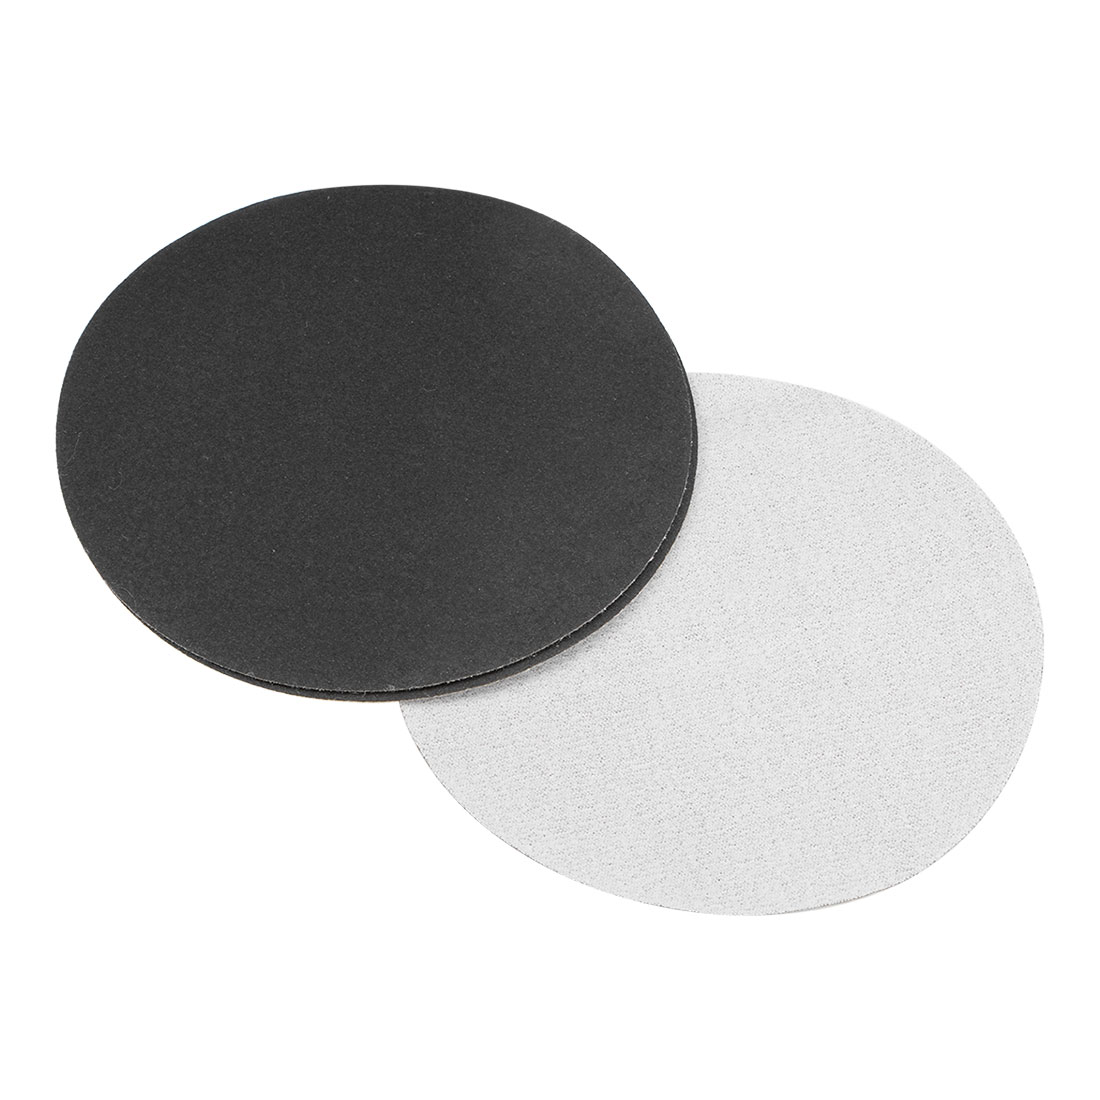 5 inch Wet Dry Discs 320 Grit Hook and Loop Sanding Disc Silicon Carbide 3pcs